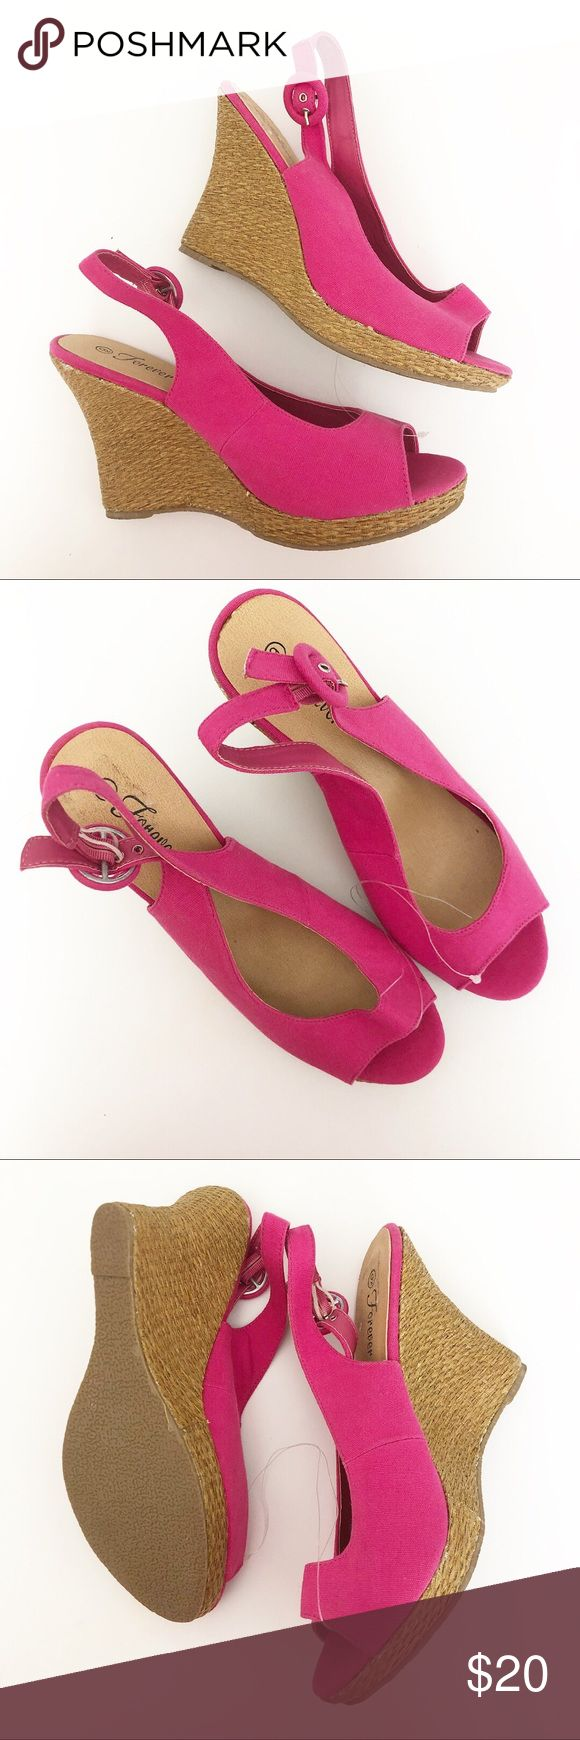 """Pink wedge shoes 9 forever sandals Brand new pink wedge shoes size 9. Brand is """"Forever"""" not forever 21. Cute for spring and summer! Shoes Wedges"""